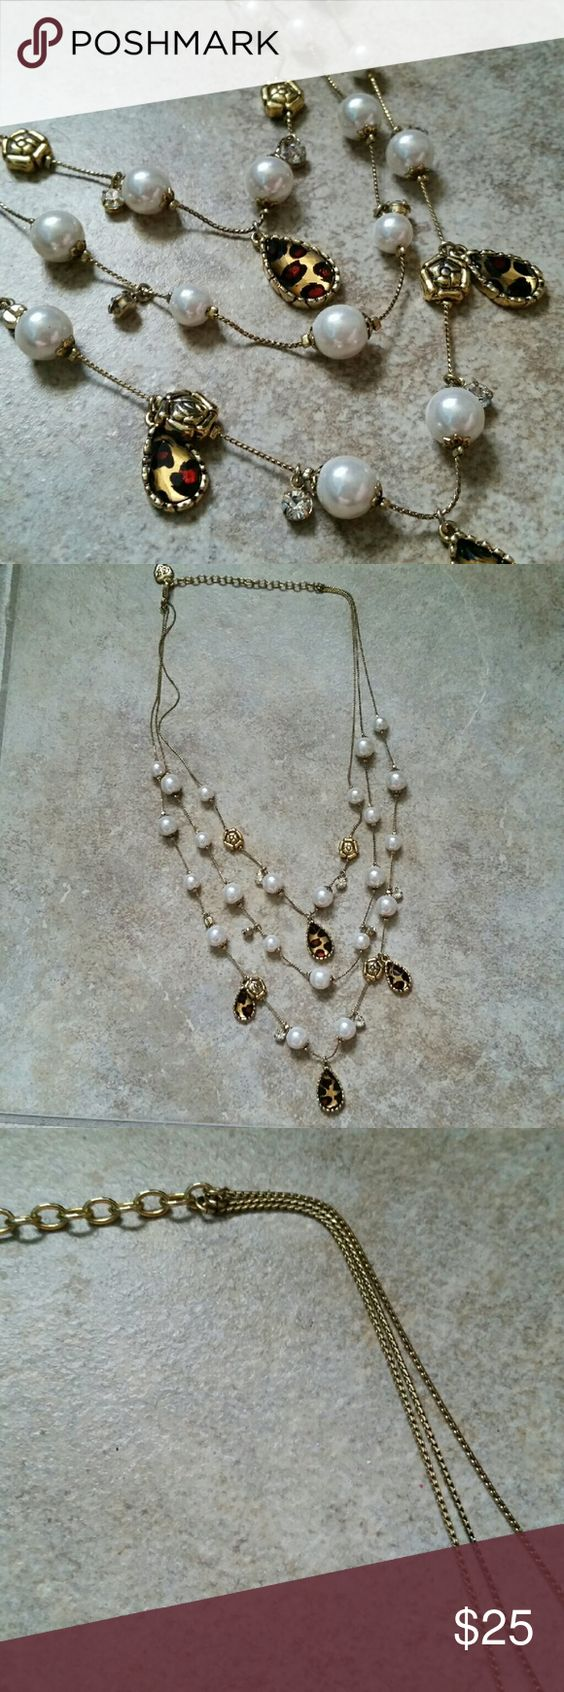 *NEW* BETSEY JOHNSON 3-tiered layered necklace This Betsey Johnson beauty is a three tiered layered necklace with pearls, rhinestones, and leopard print tear drop stones. Very lightweight, has a gold adjustable chain, and is a fabulous staple piece. Betsey Johnson Jewelry Necklaces